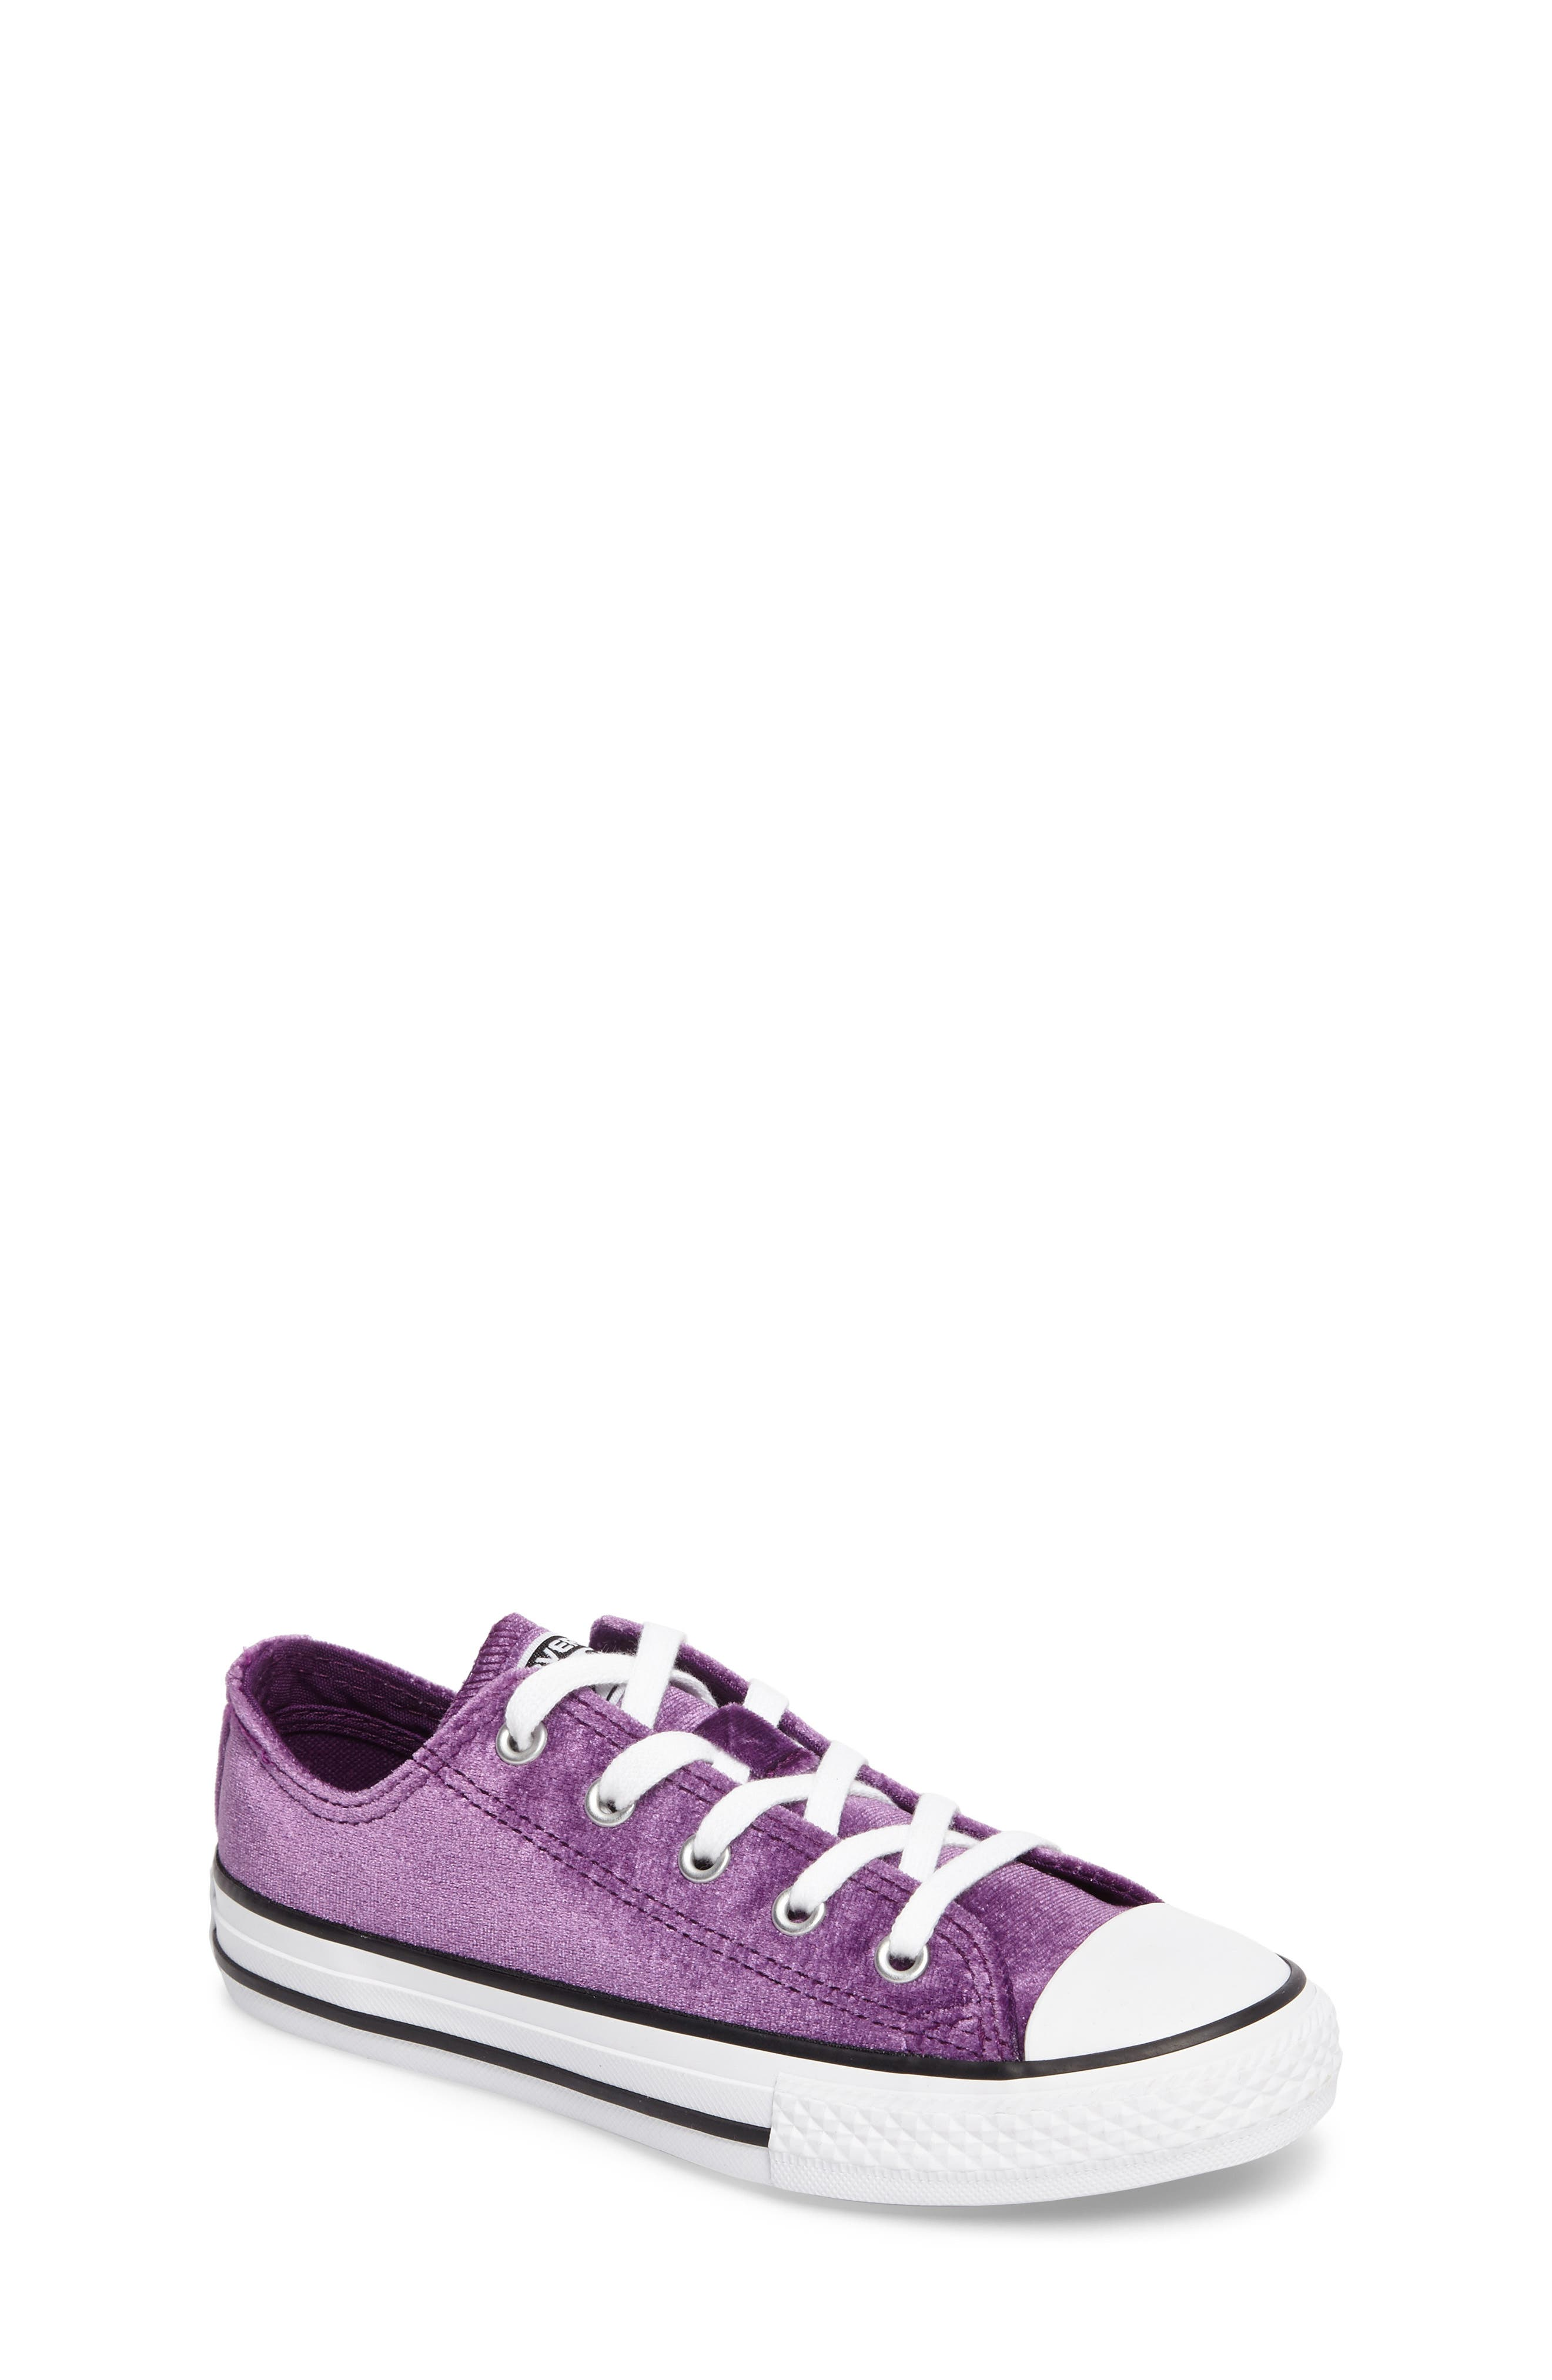 Chuck Taylor<sup>®</sup> All Star<sup>®</sup> Velvet OX Low Top Sneaker,                         Main,                         color, 500